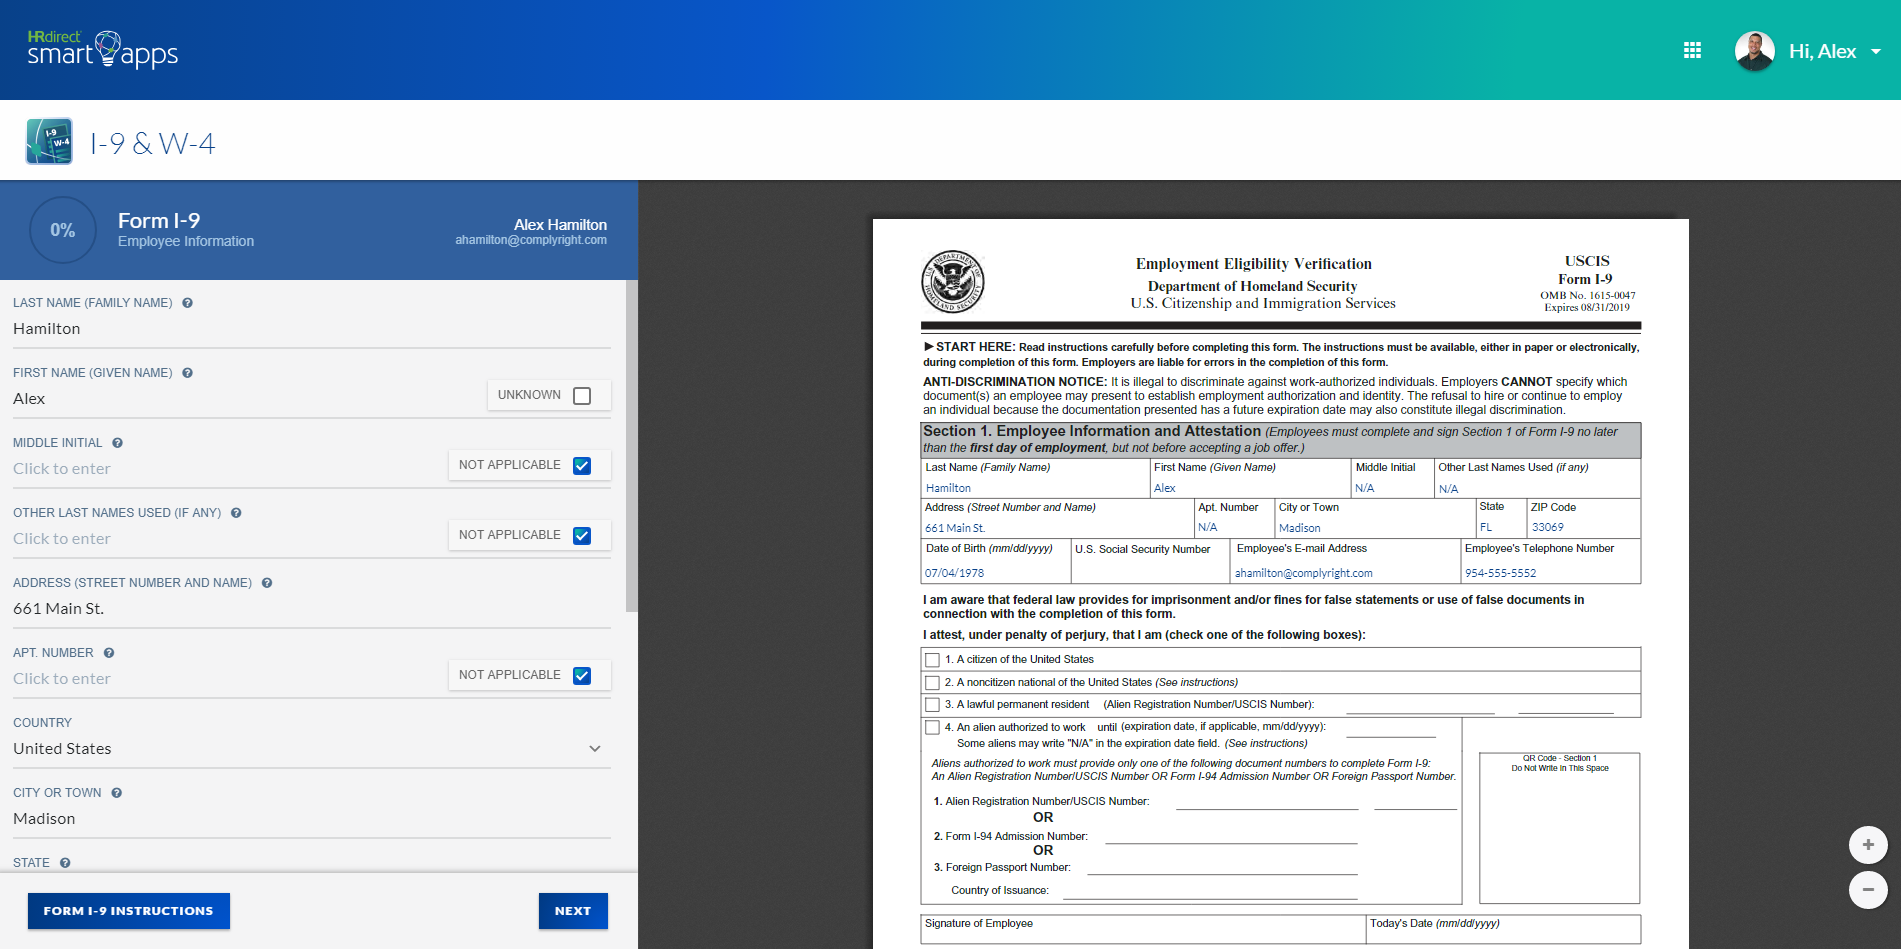 Onboard New Hires with I-9 Forms Software Guided by HR Experts